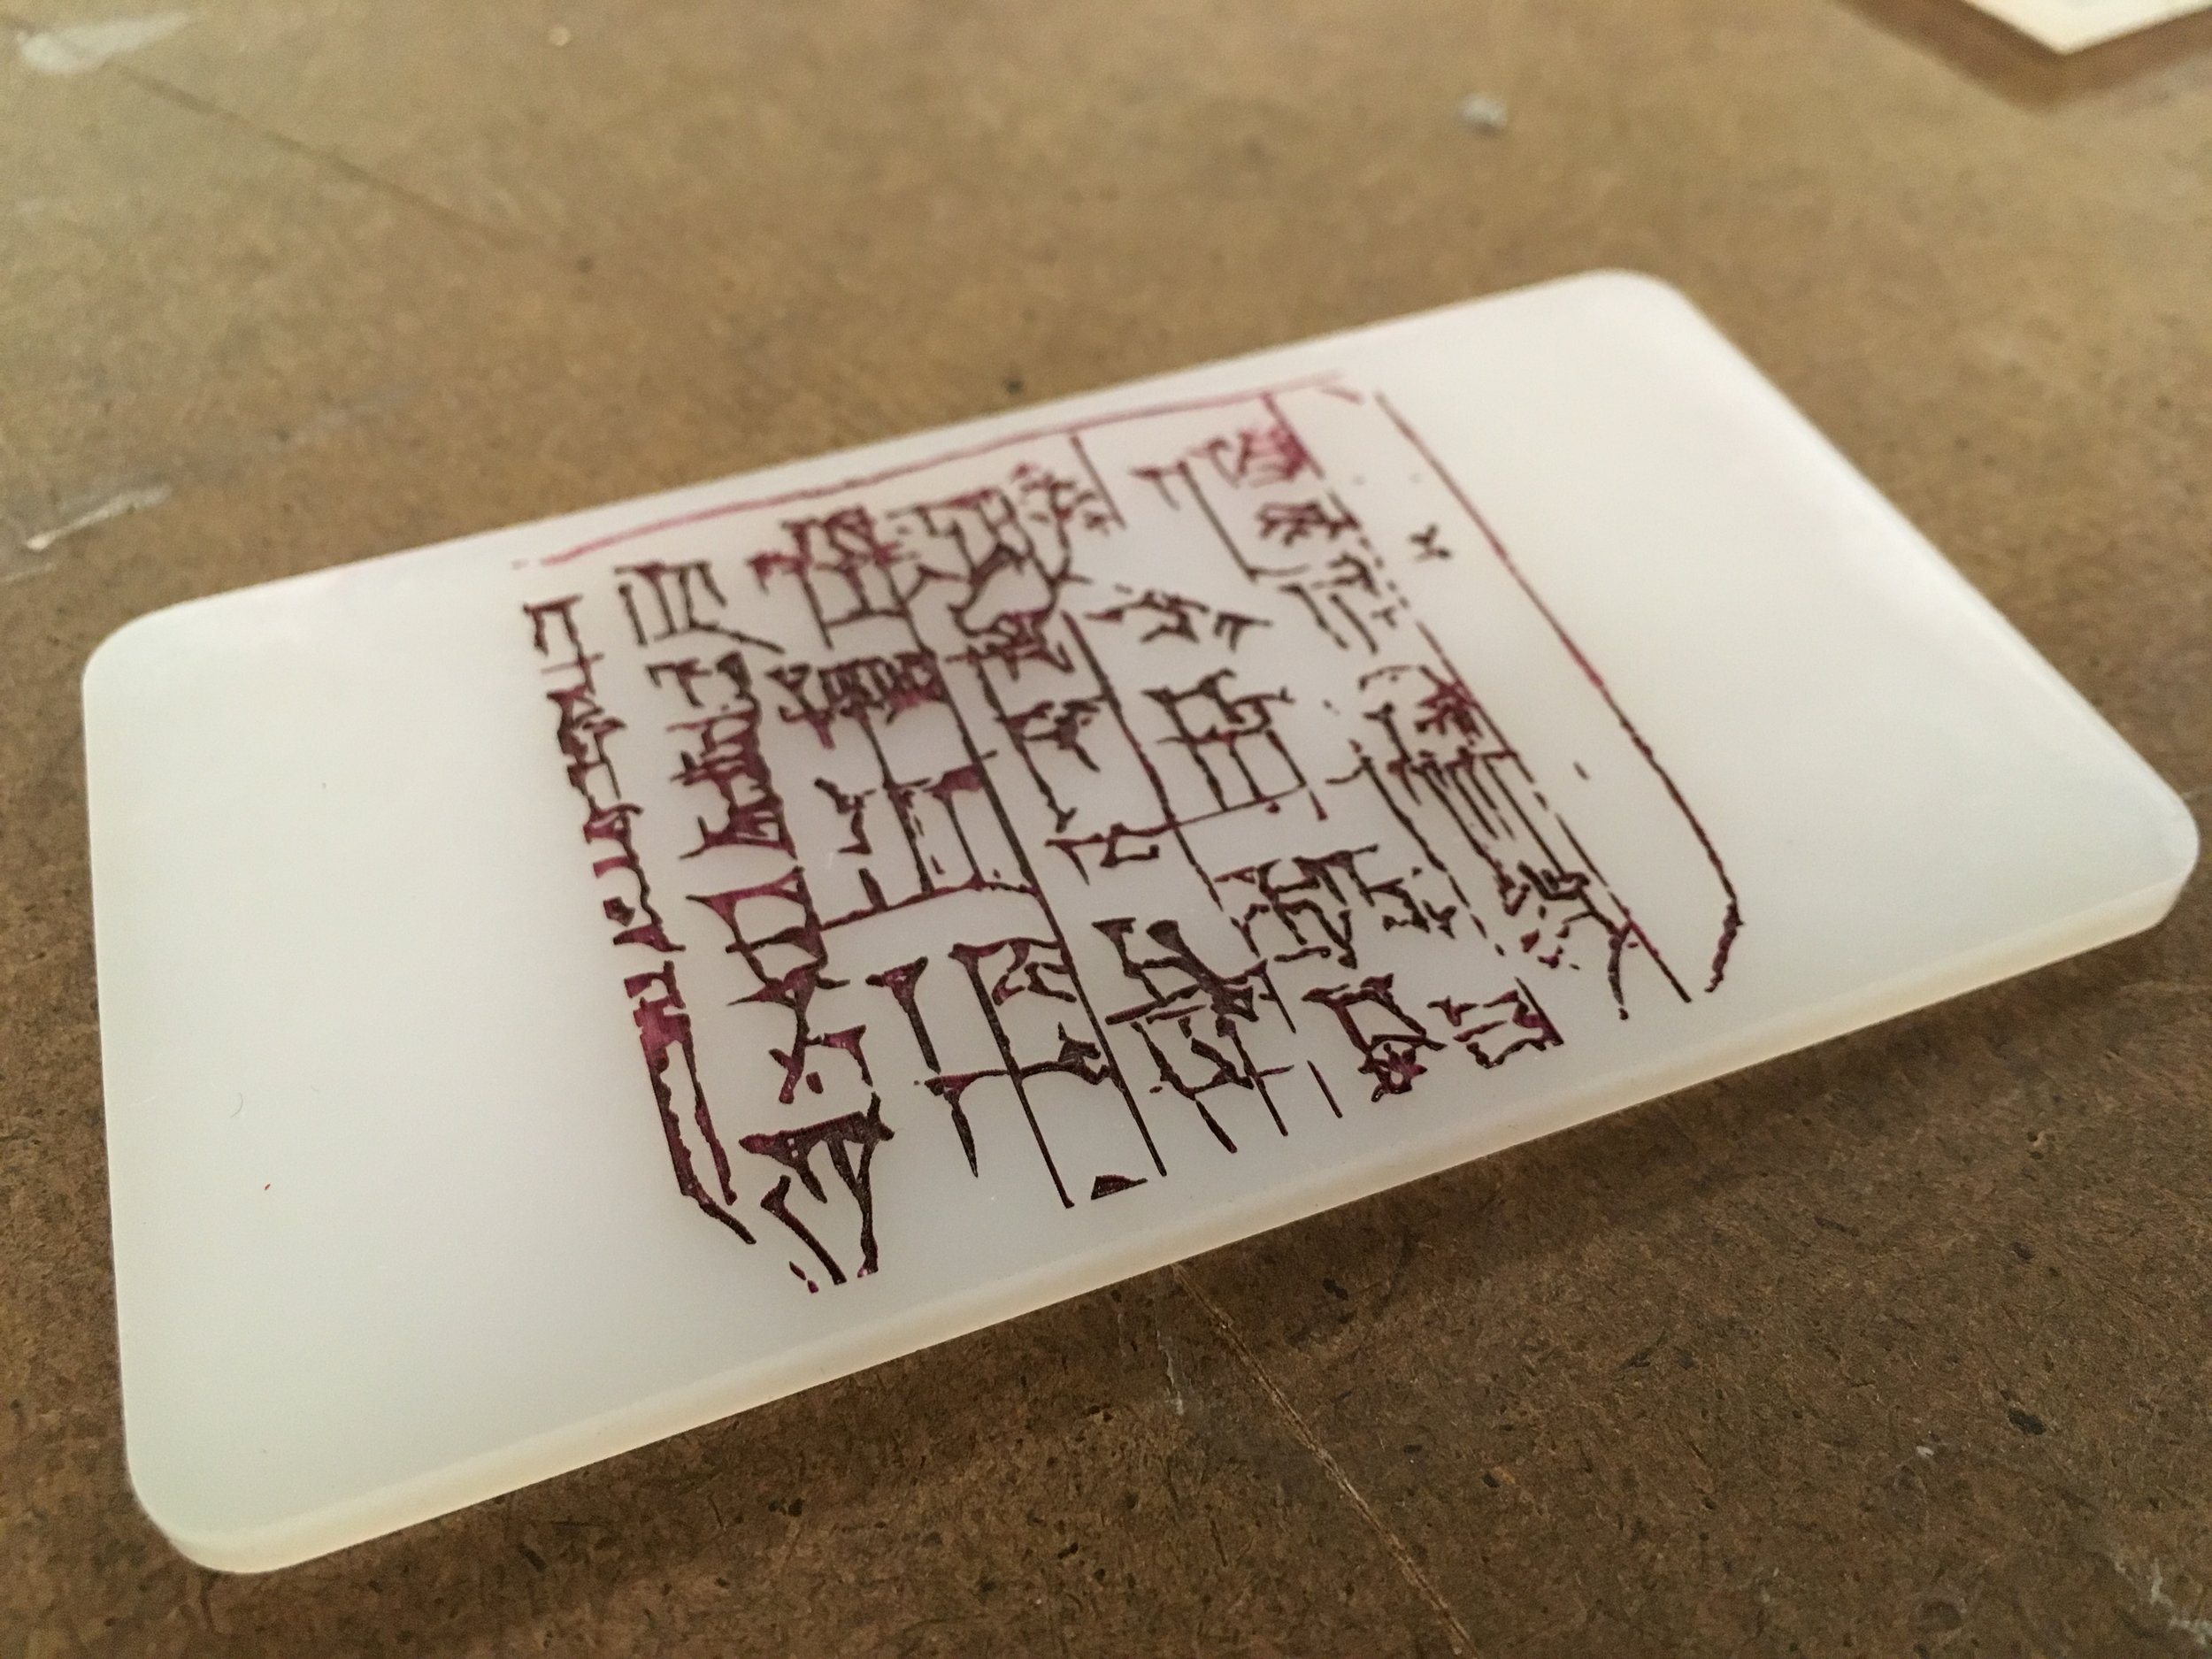 laser cut tablet of neural network generated cuneiform